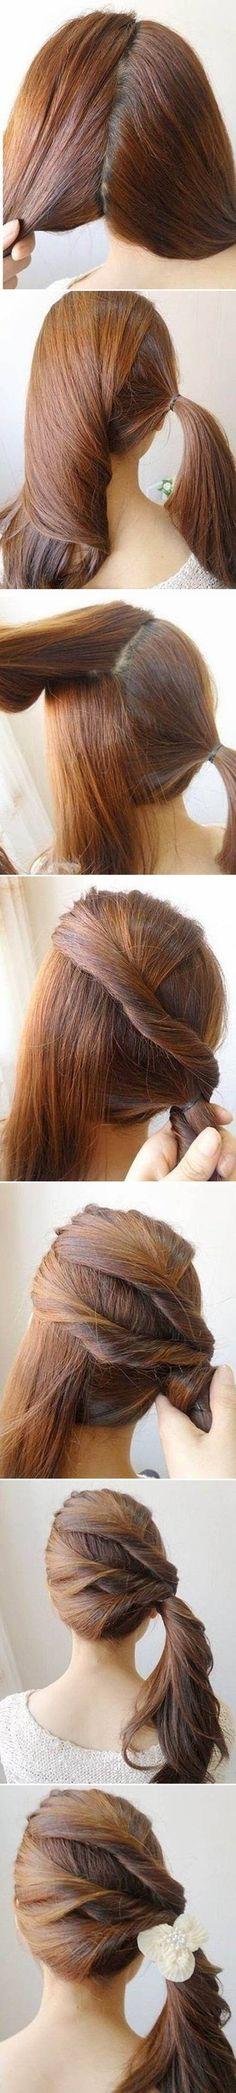 DIY Easy Twisted Side Ponytail Hairstyle #fashion #beauty #hairstyle